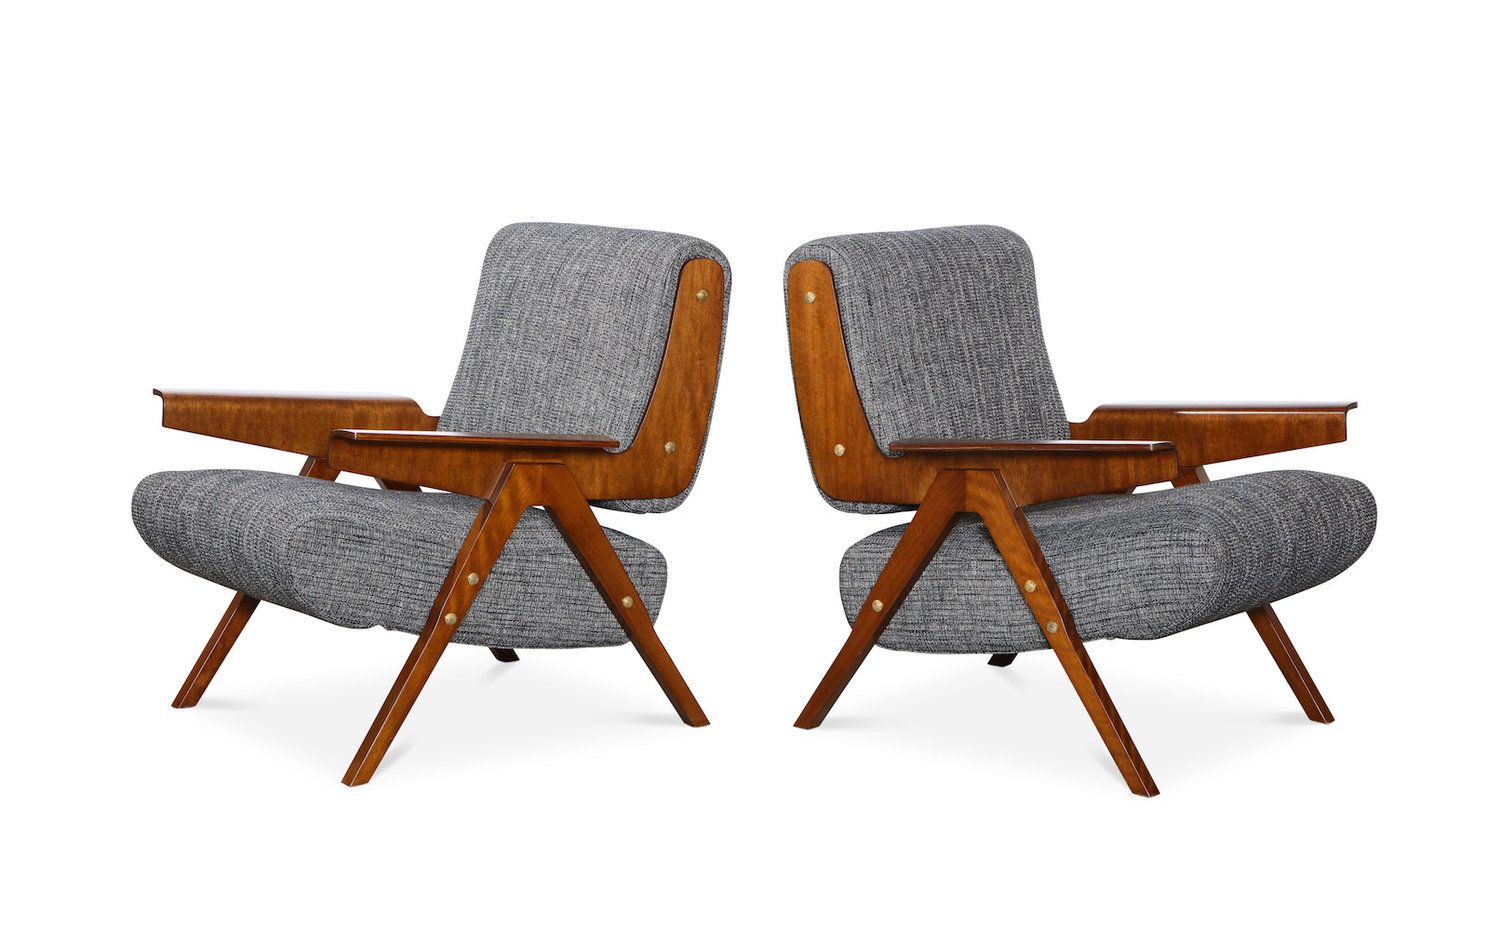 Rare Pair Of 831 Lounge Chairs By Gianfranco Frattini For Cassina